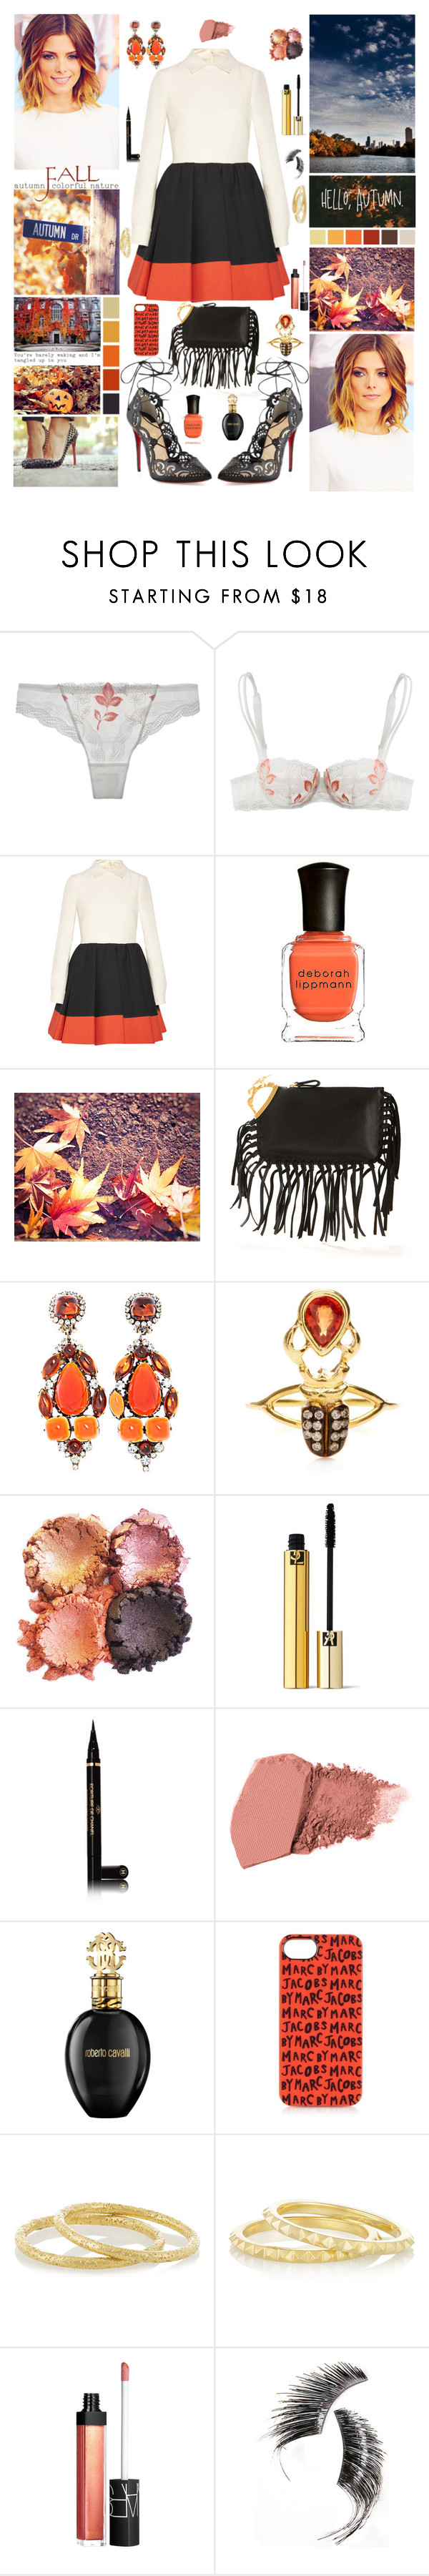 """``try a new thing, and let's spark a new flame"" by sjorcdanw ❤ liked on Polyvore featuring Simone Perele, Valentino, Deborah Lippmann, Christian Louboutin, Kenneth Jay Lane, Daniela Villegas, Yves Saint Laurent, Chanel, NARS Cosmetics and Roberto Cavalli"